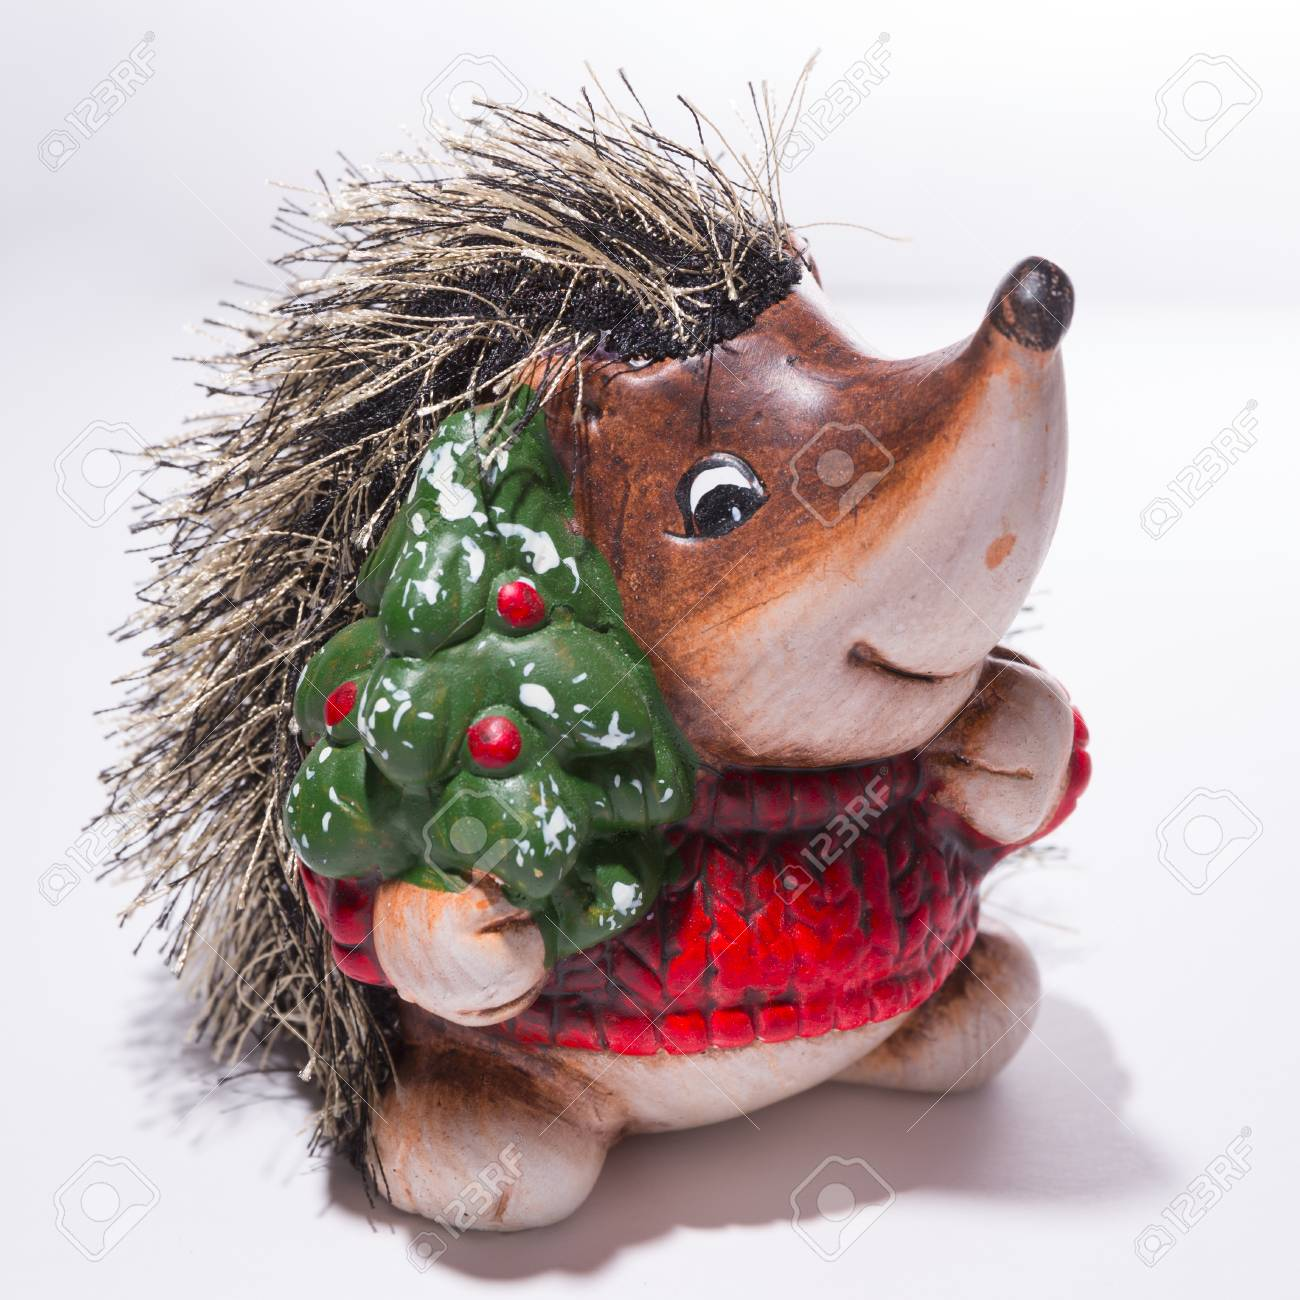 Hedgehog Christmas Sweater.Statuette Of A Hedgehog In Christmas Red Sweater With A Christmas